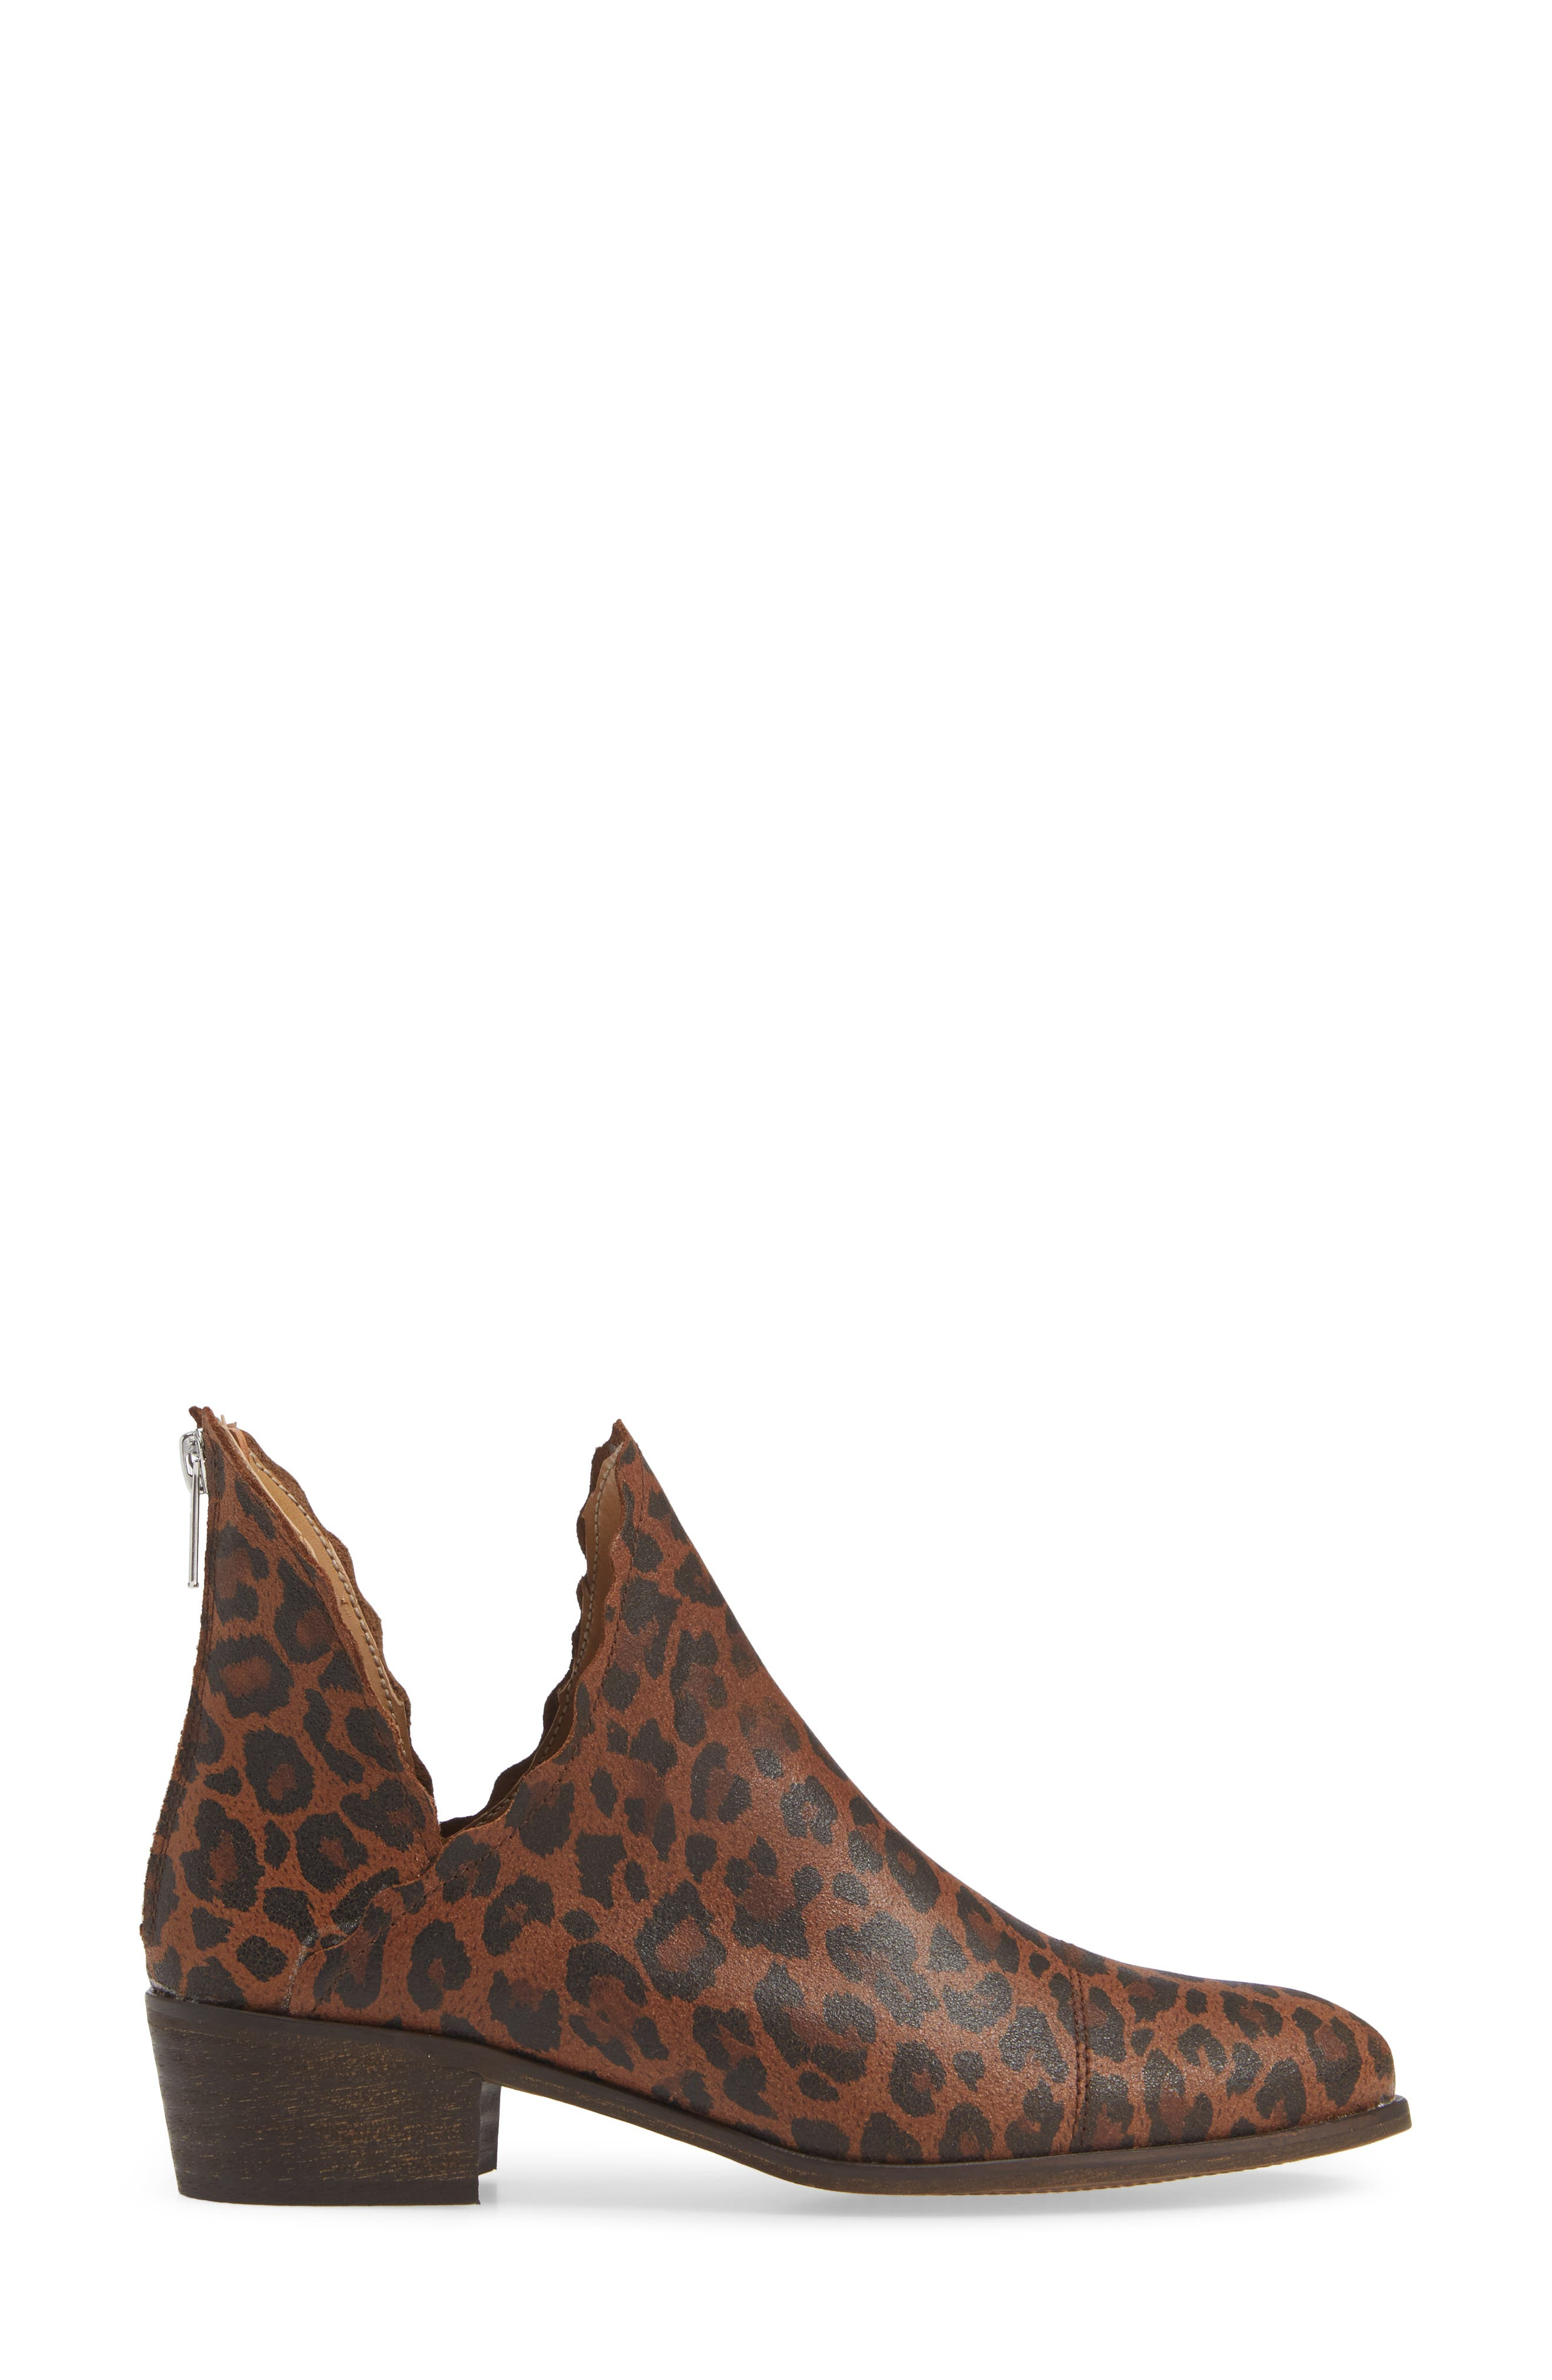 KLUB NICO, Bae Scalloped Bootie, Alternate thumbnail 3, color, LEOPARD SUEDE